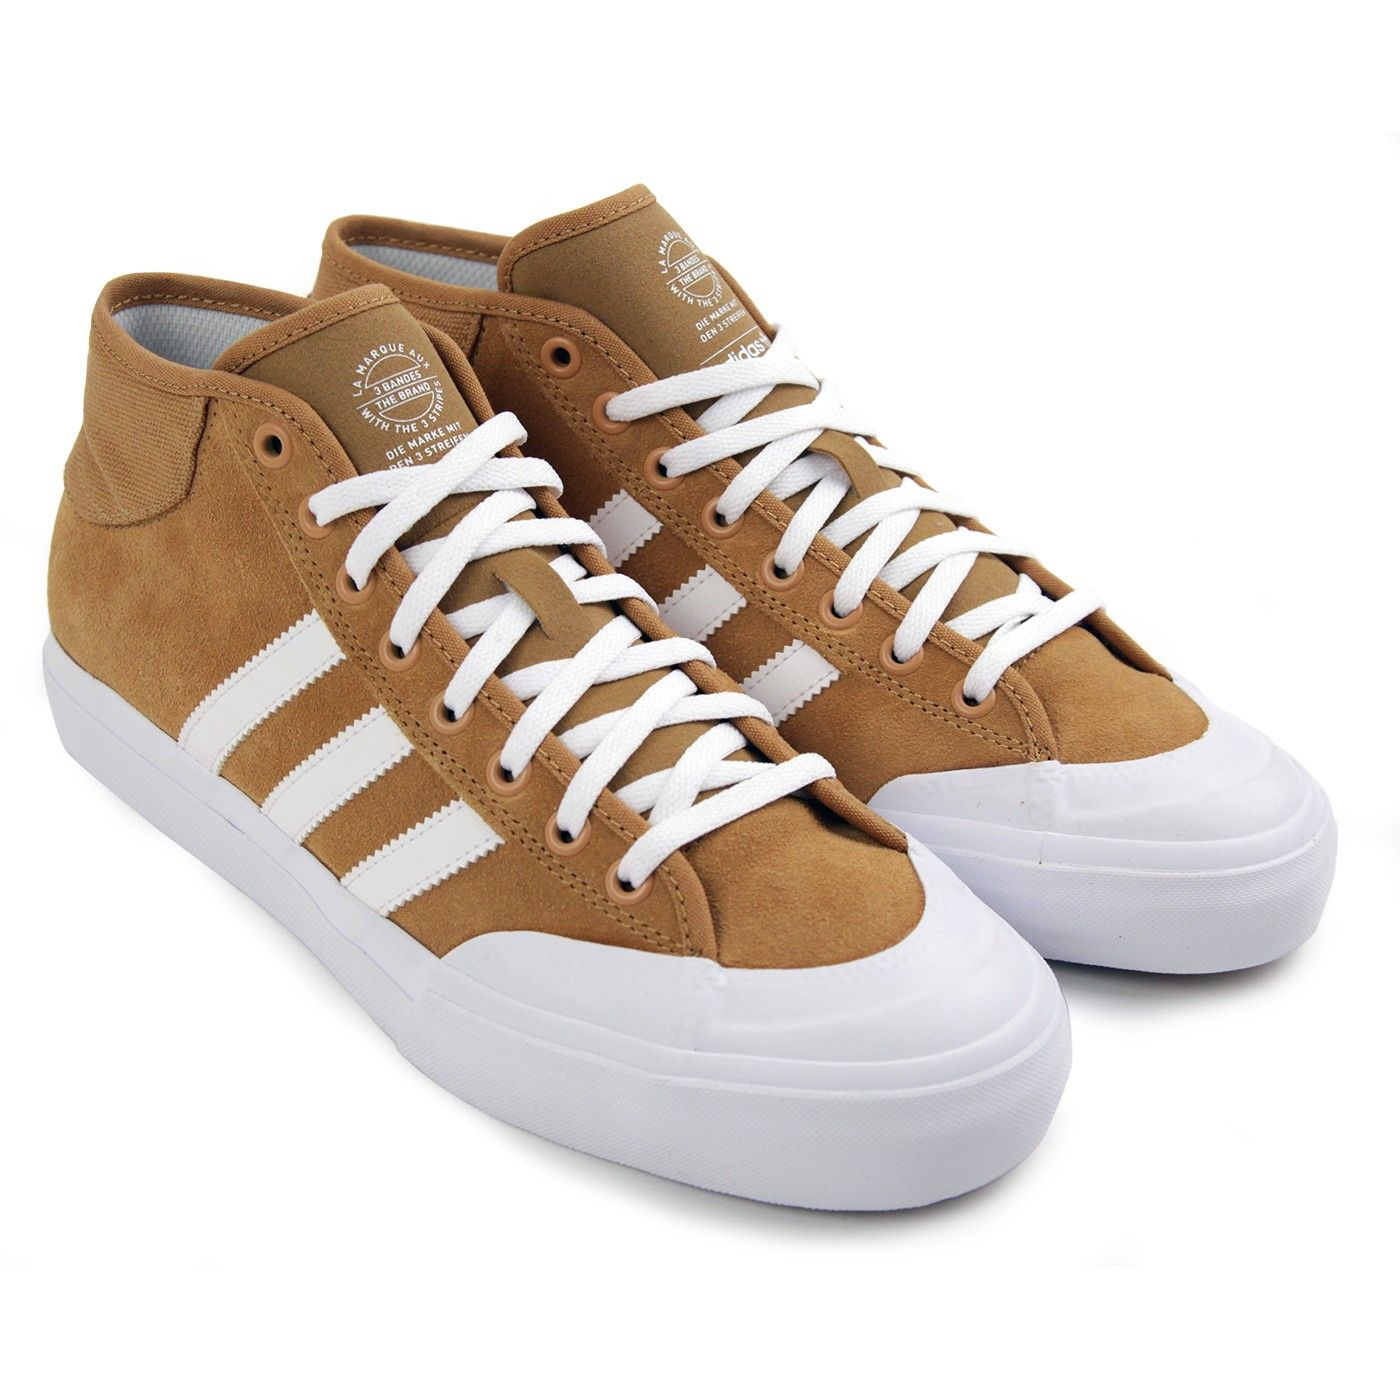 770aa8c796e Matchcourt Mid Shoes in Mesa   White   White by Adidas Skateboarding ...